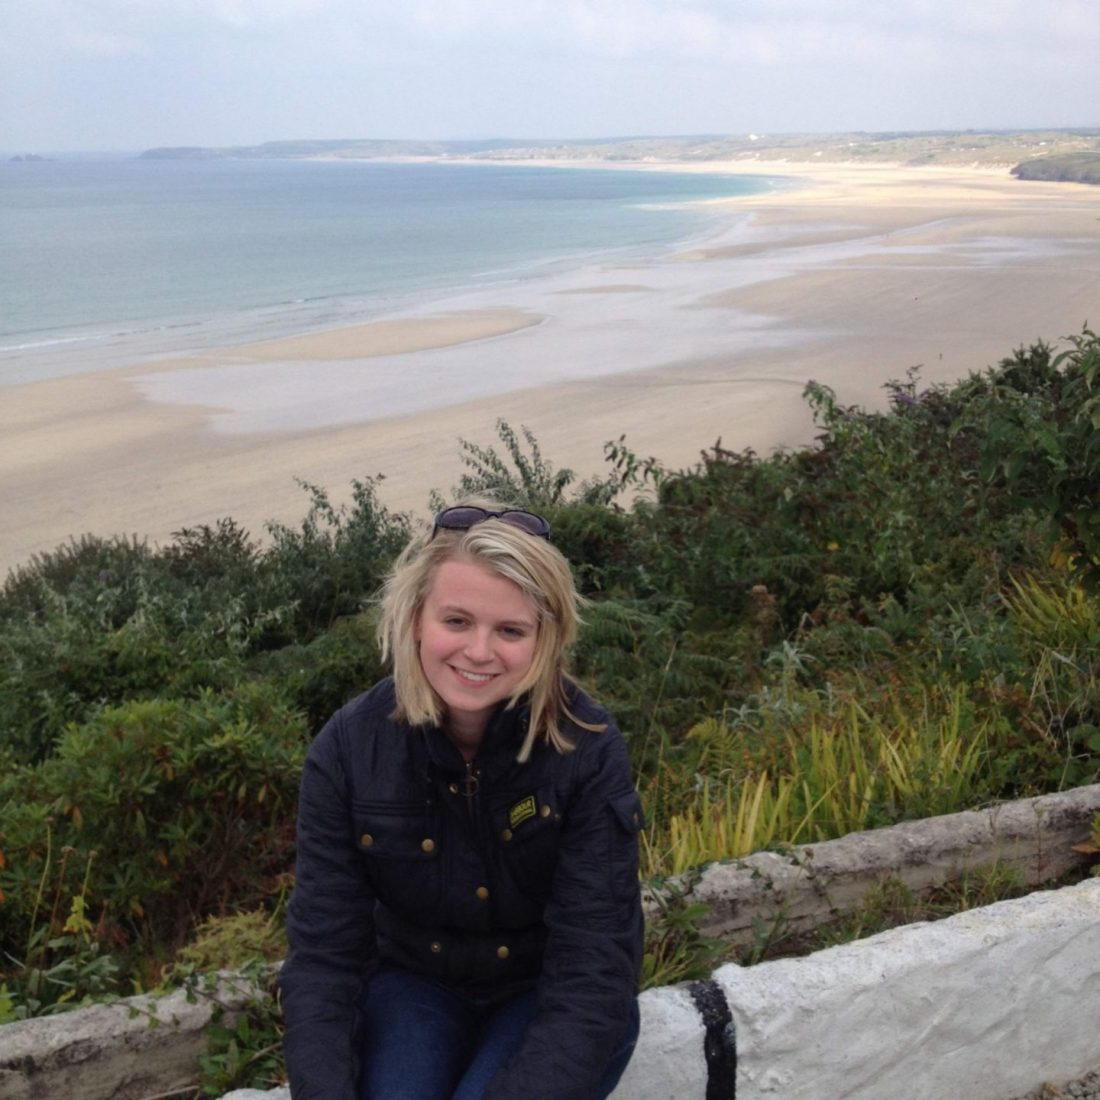 Laura overlooking Porthkidney Beach, Cornwall